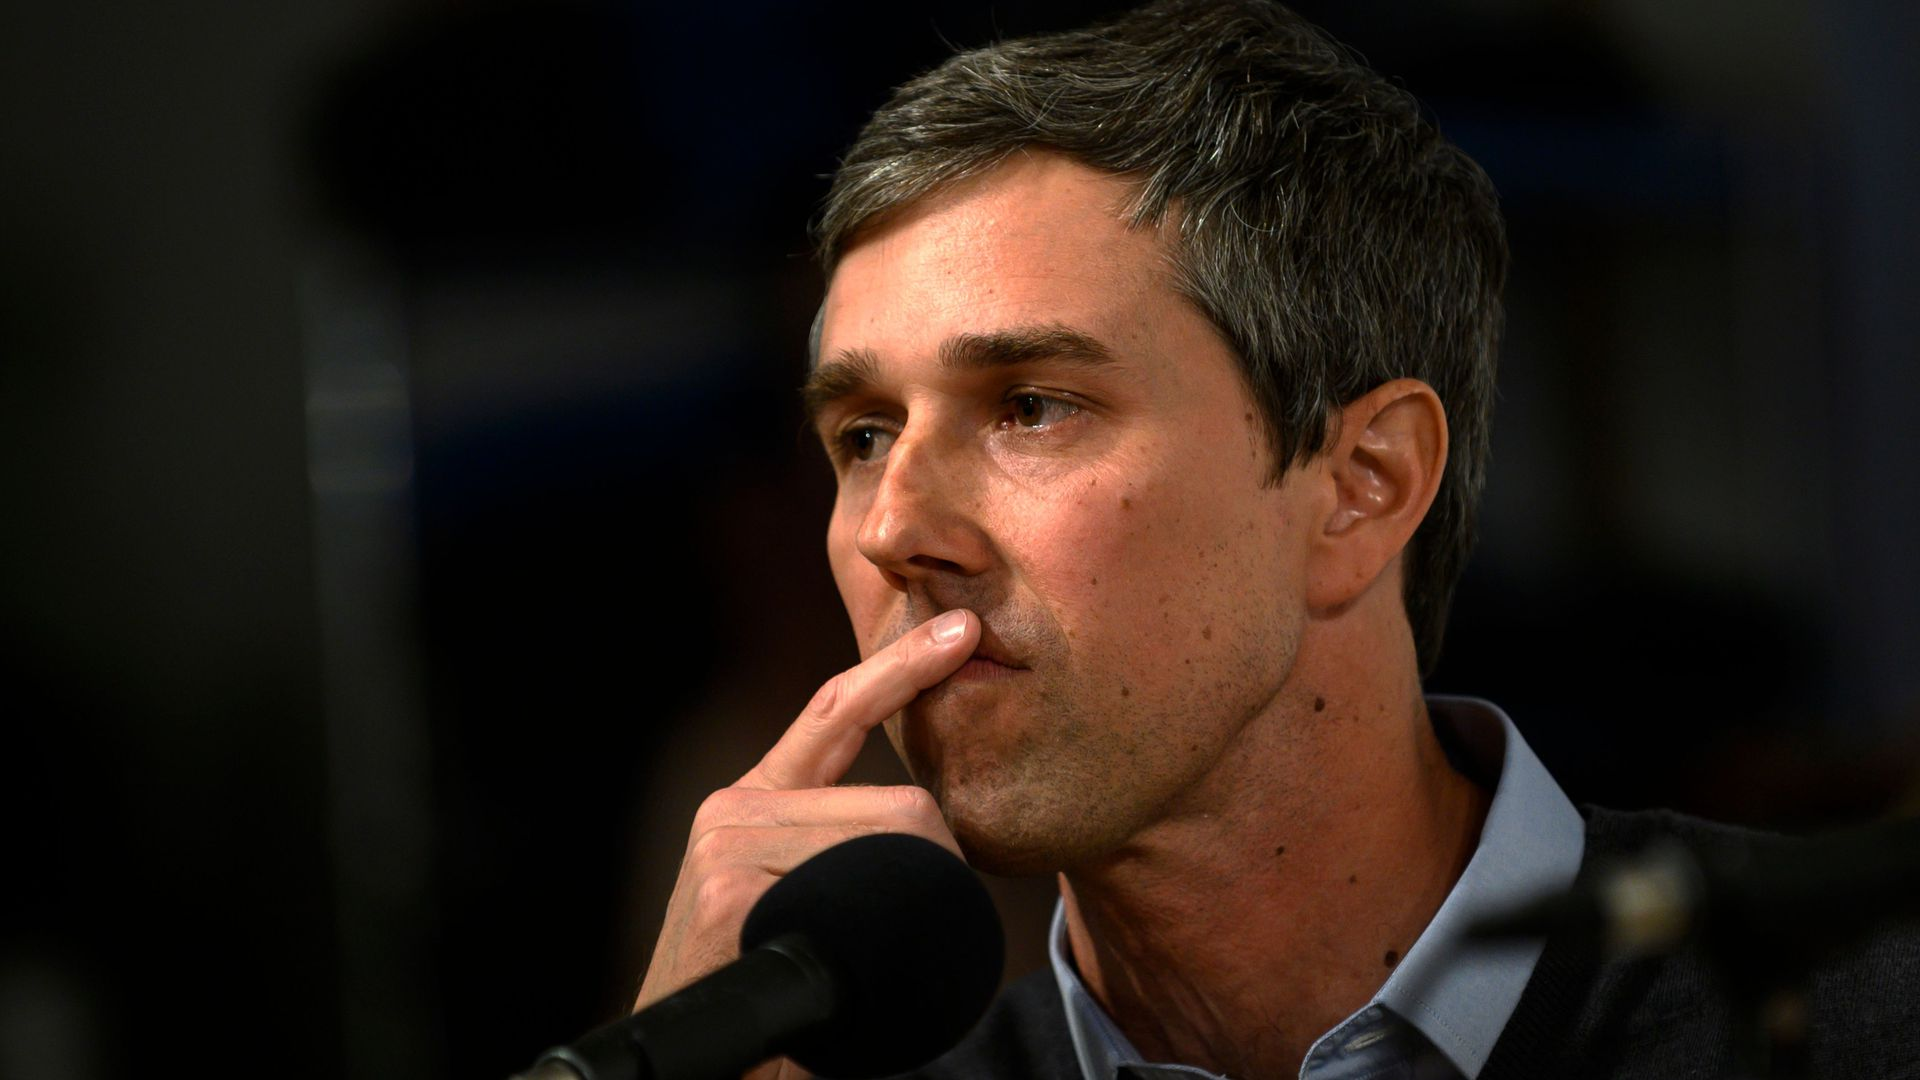 Former Texas Congressman and Democratic party presidential candidate Beto O'Rourke